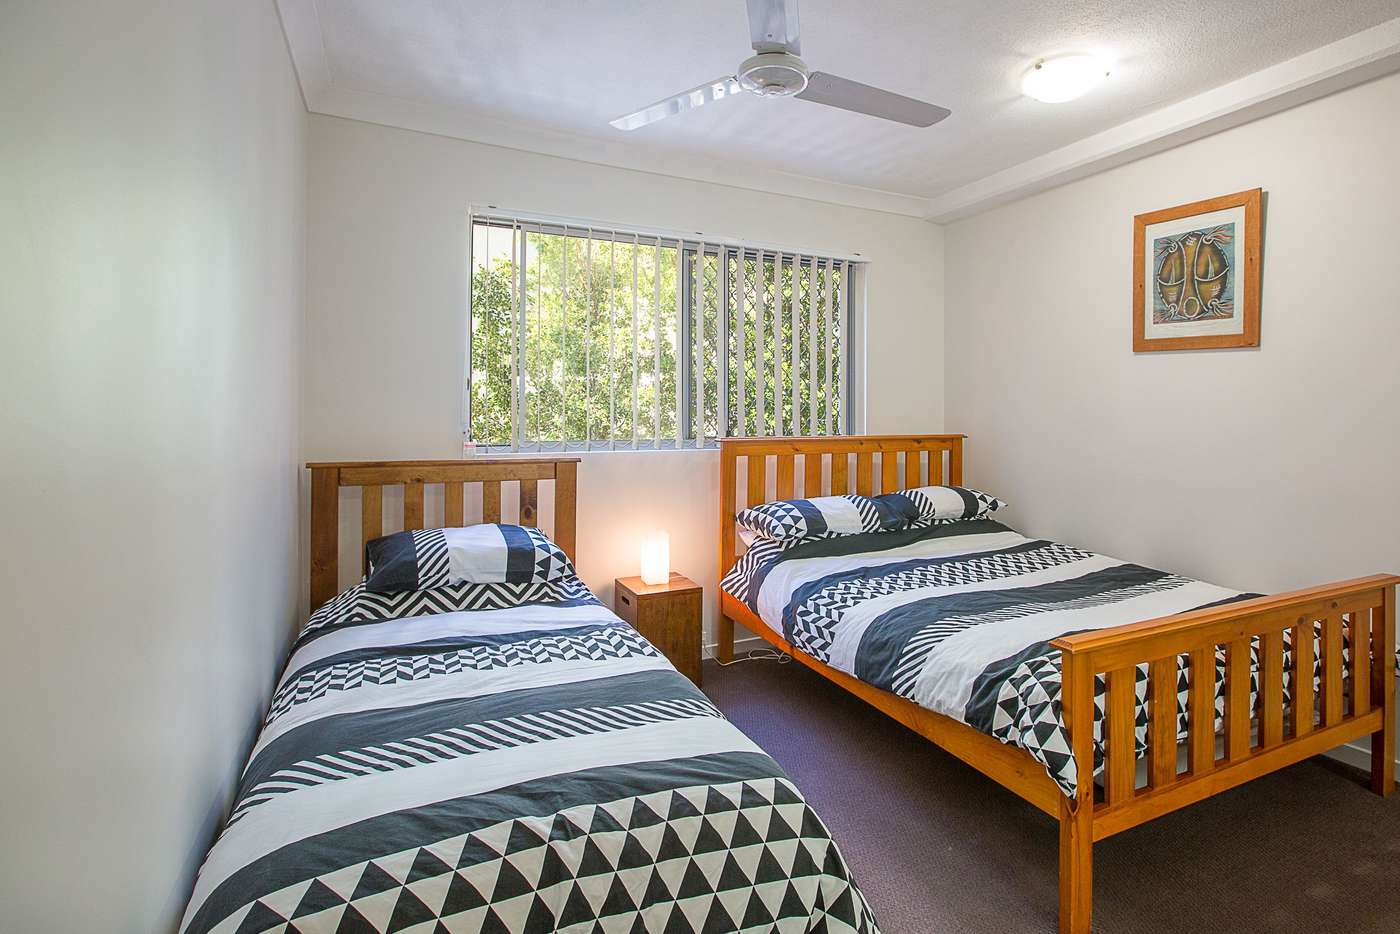 Seventh view of Homely apartment listing, 5/8 Proud Street, Labrador QLD 4215